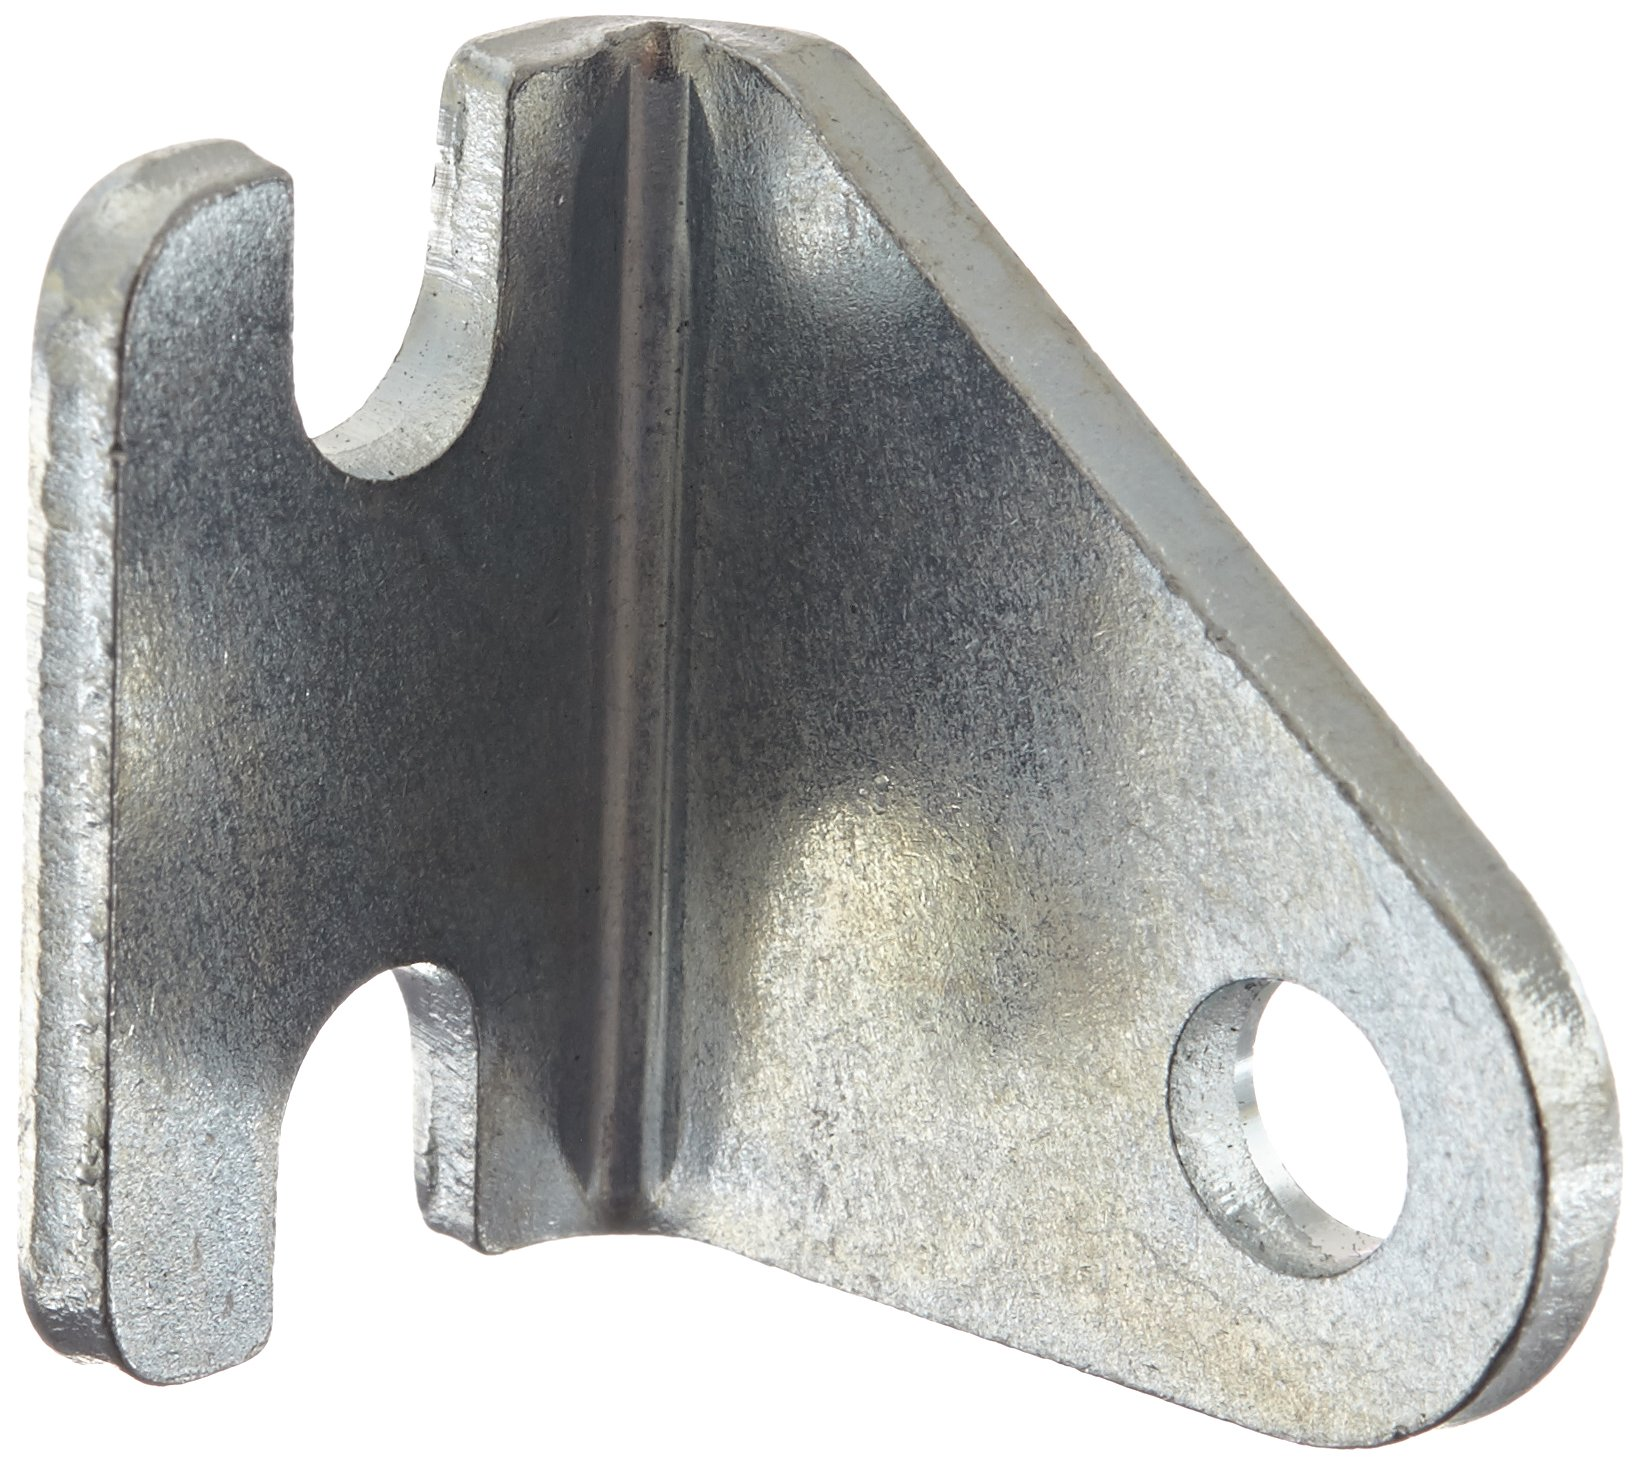 Parker L071310200  Pivot Bracket, Trunnion Mount for 3/4'', 7/8'', 1 1/16'' Bore